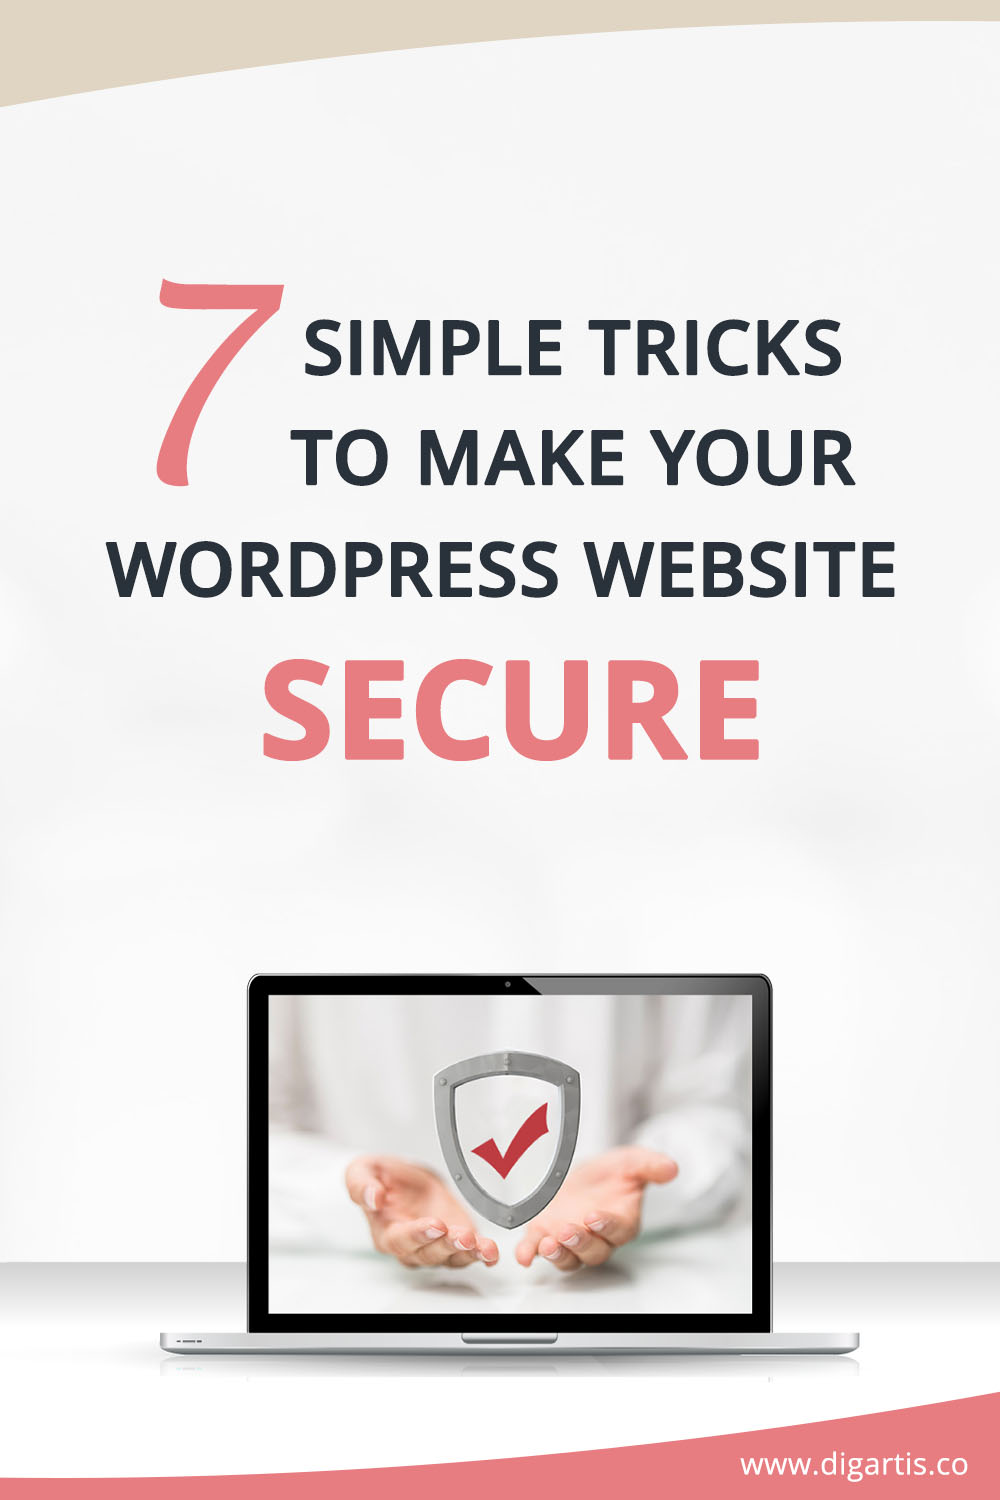 7 simple tricks to make your WordPress website secure